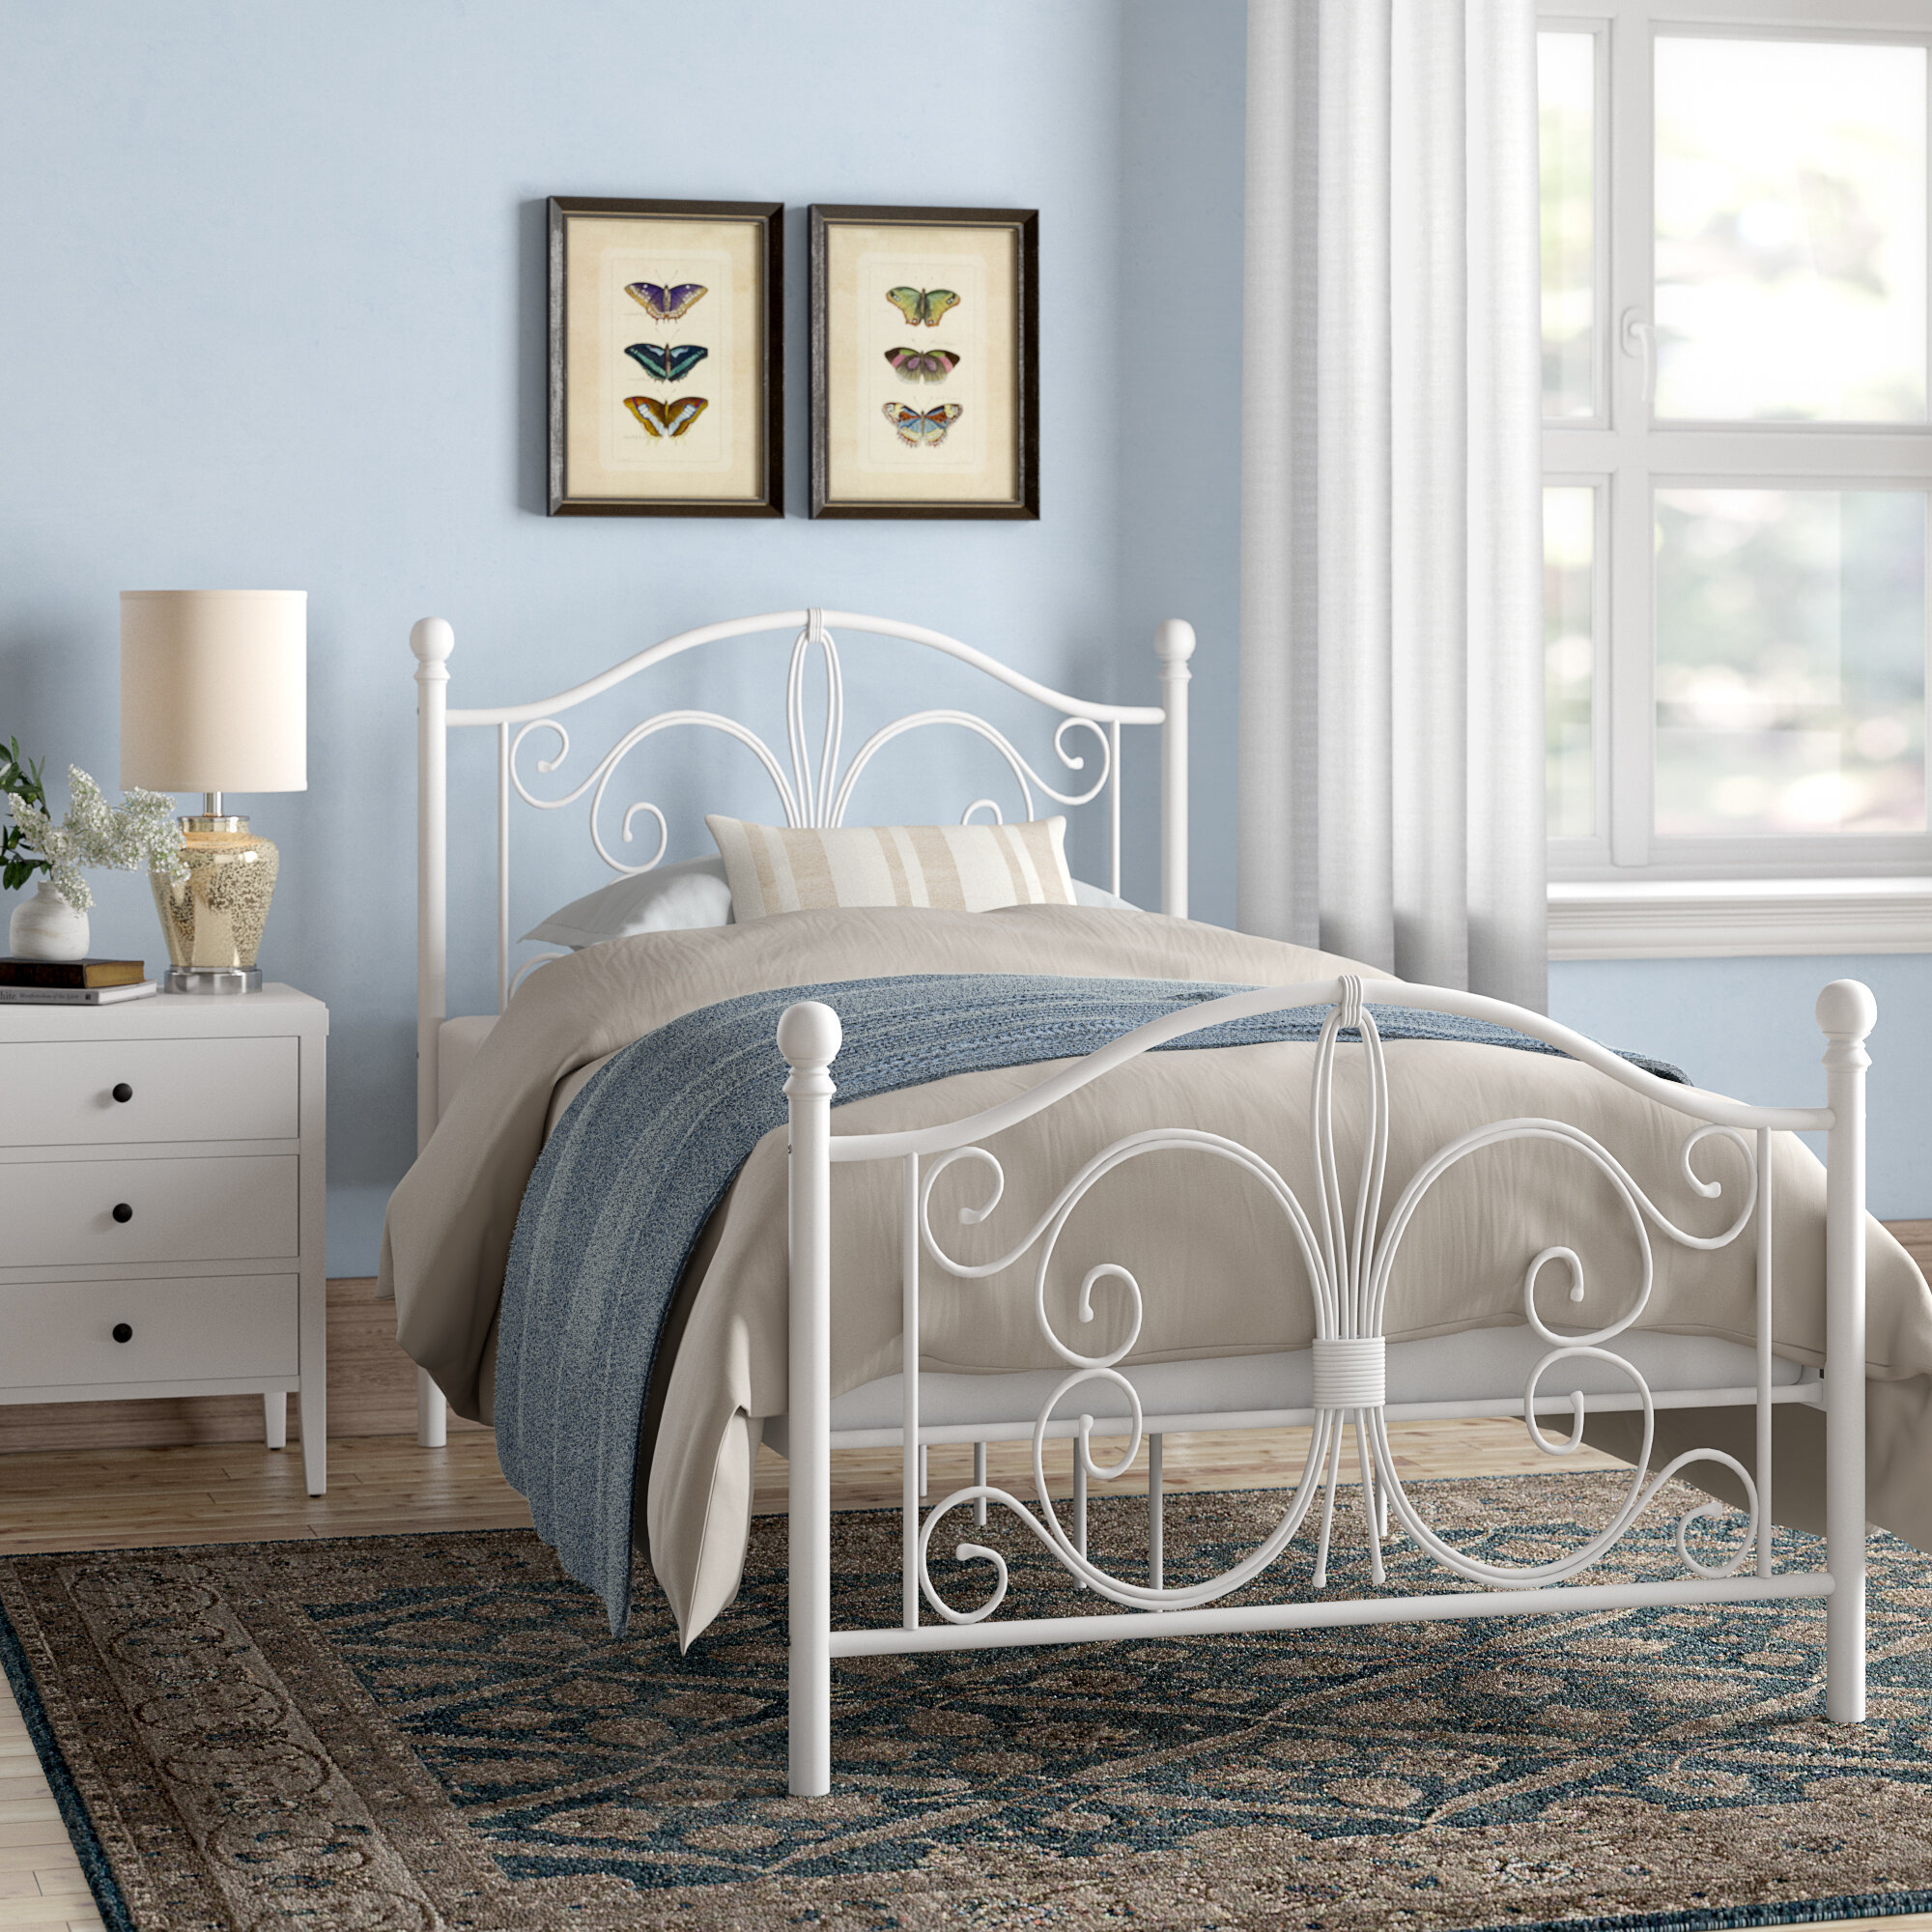 Fleur De Lis Living | Birch Lane With 2 Piece Metal Wall Decor Sets By Fleur De Lis Living (View 18 of 30)